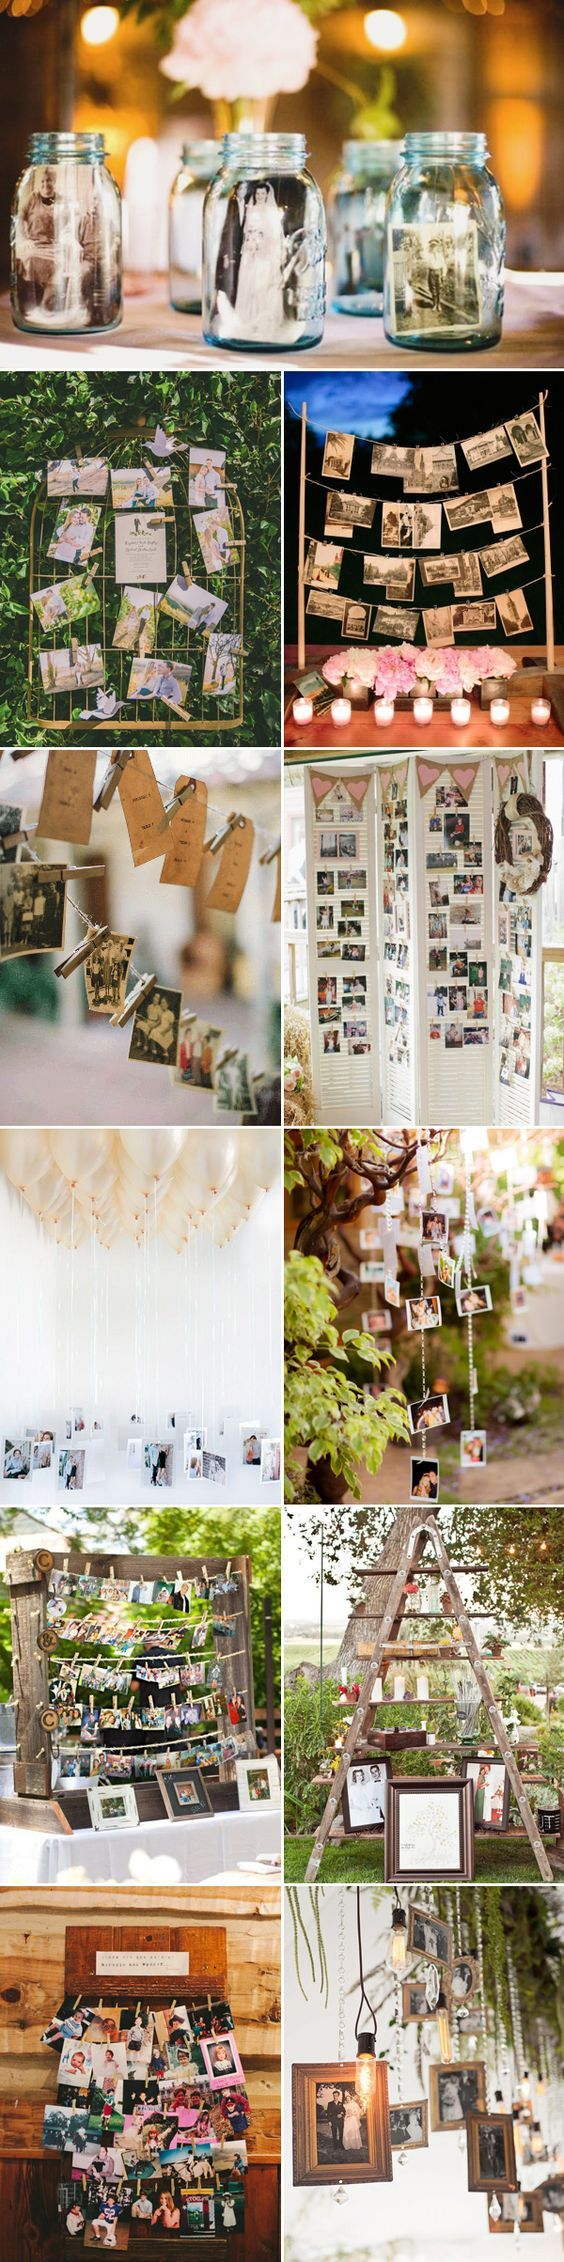 Inspiration for Displaying Photos at your Wedding